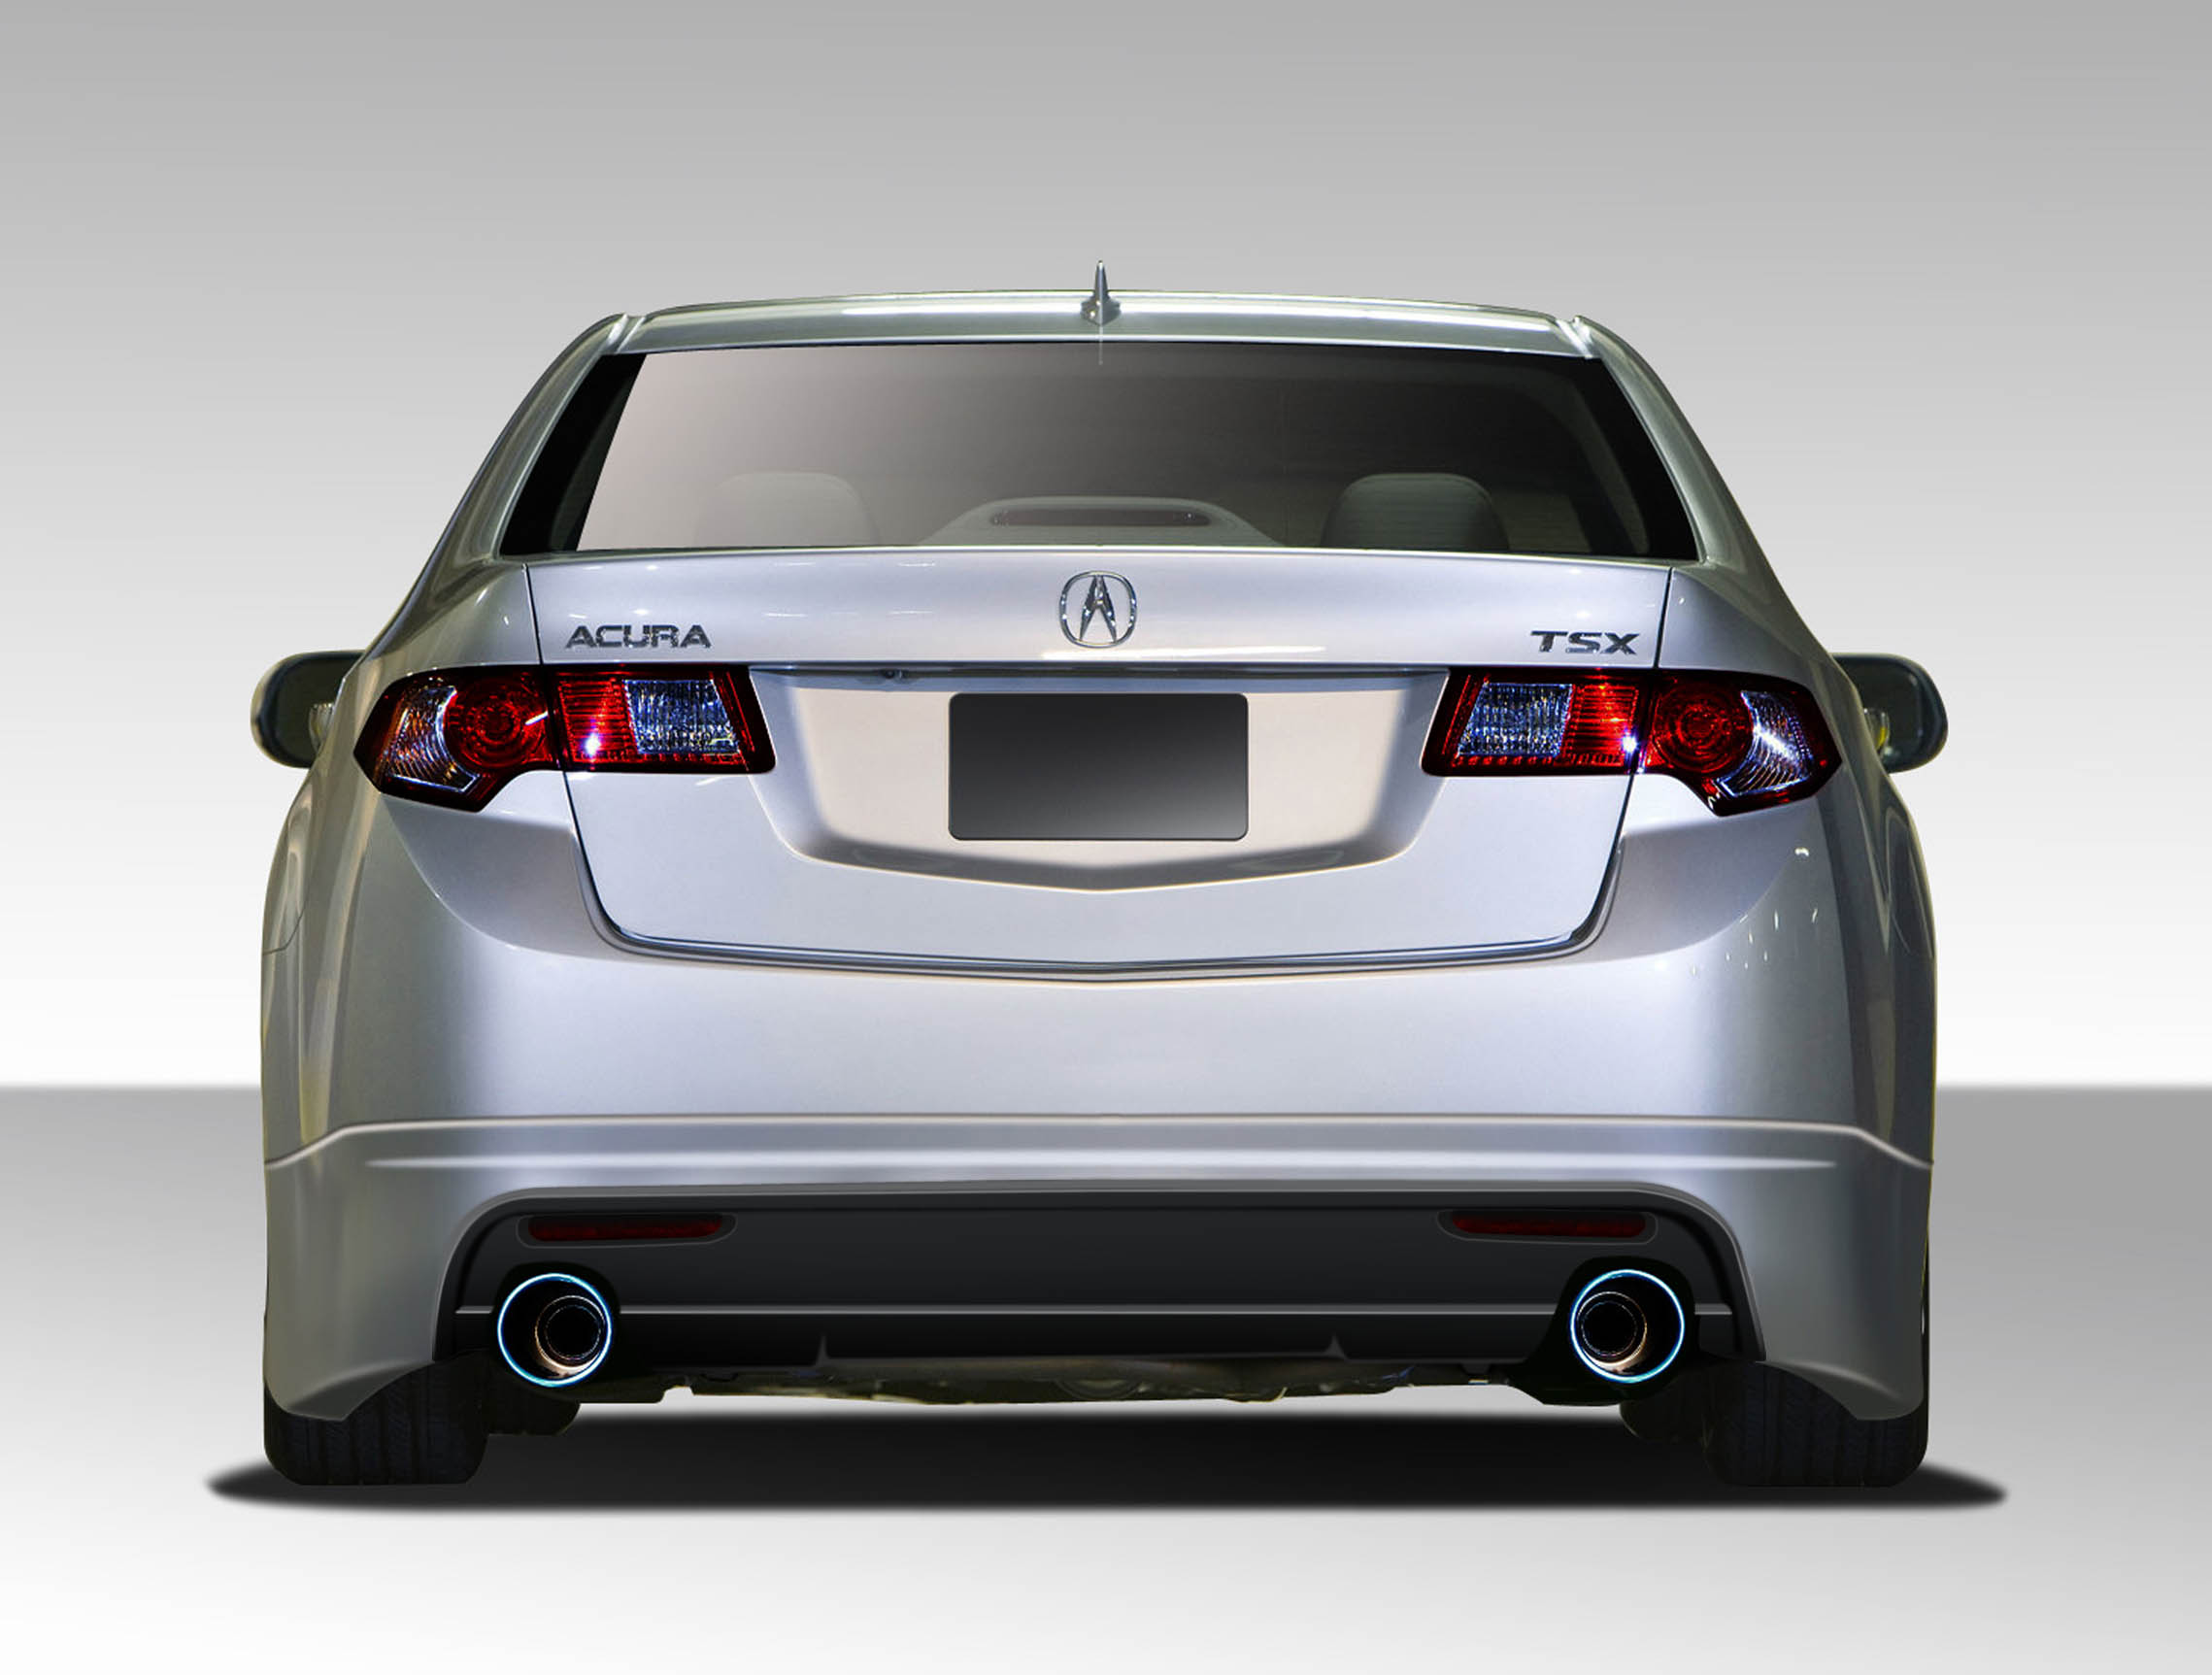 09 14 Acura Tsx Type M Duraflex Rear Bumper Lip Body Kit 108765 Ebay